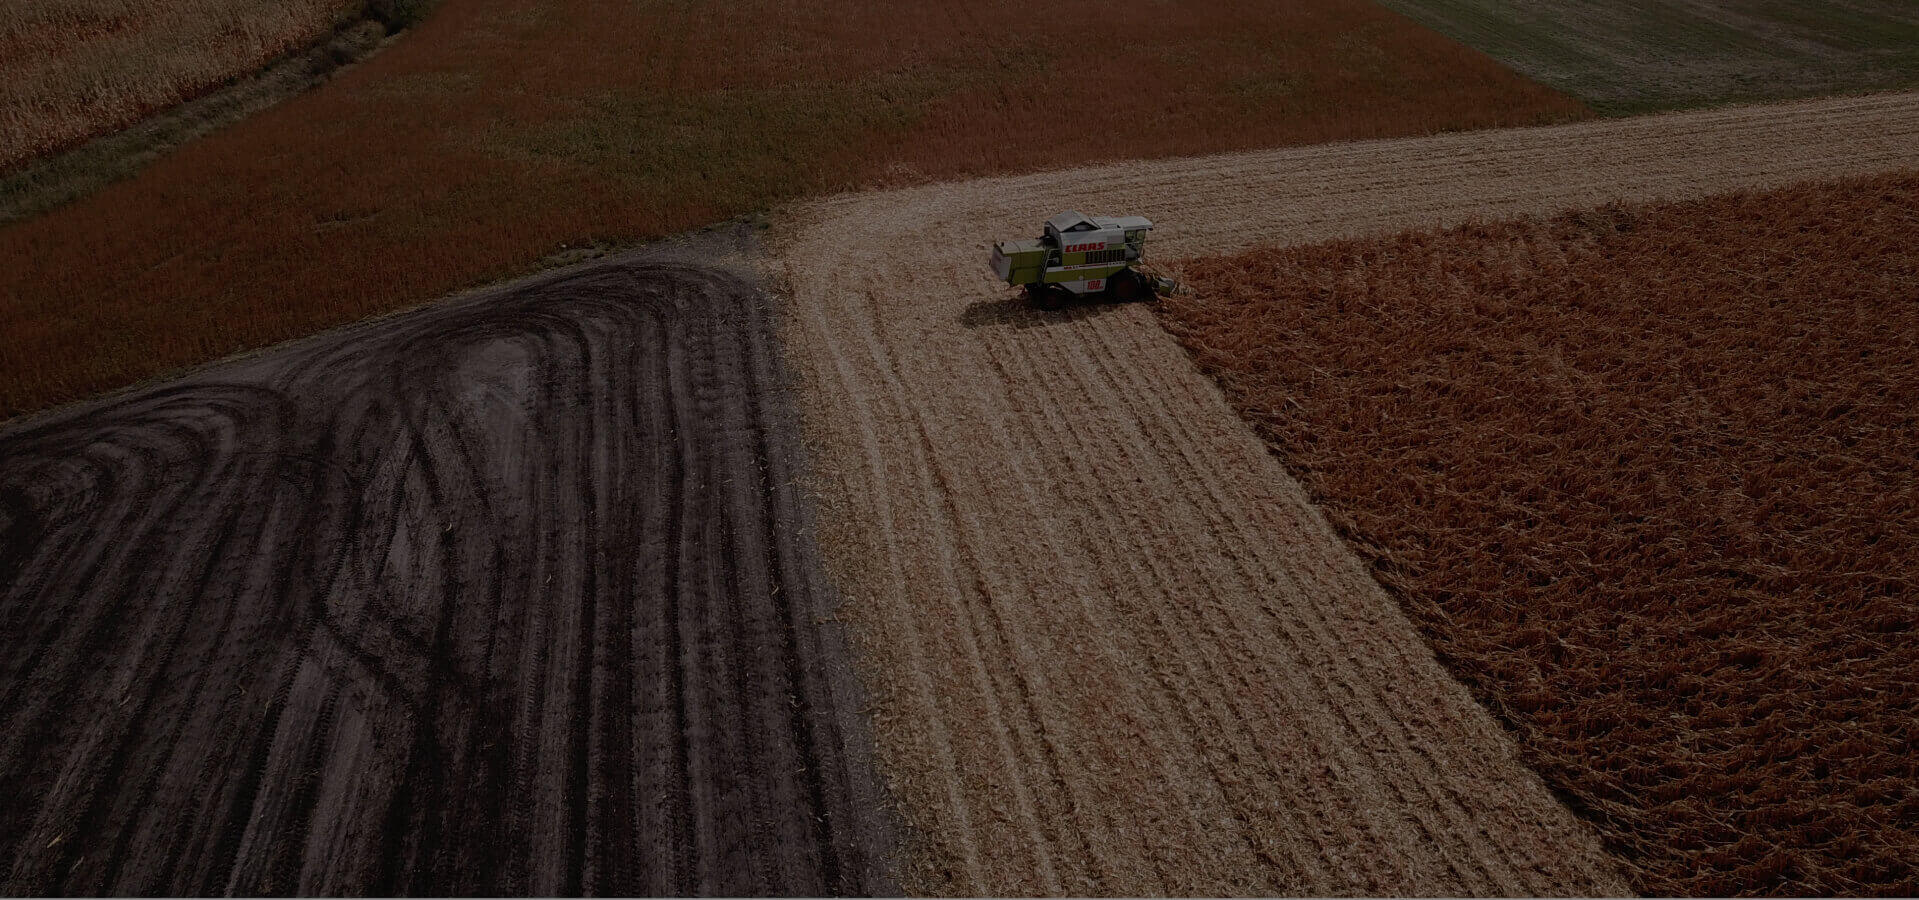 precision farming - removing fields during harvest